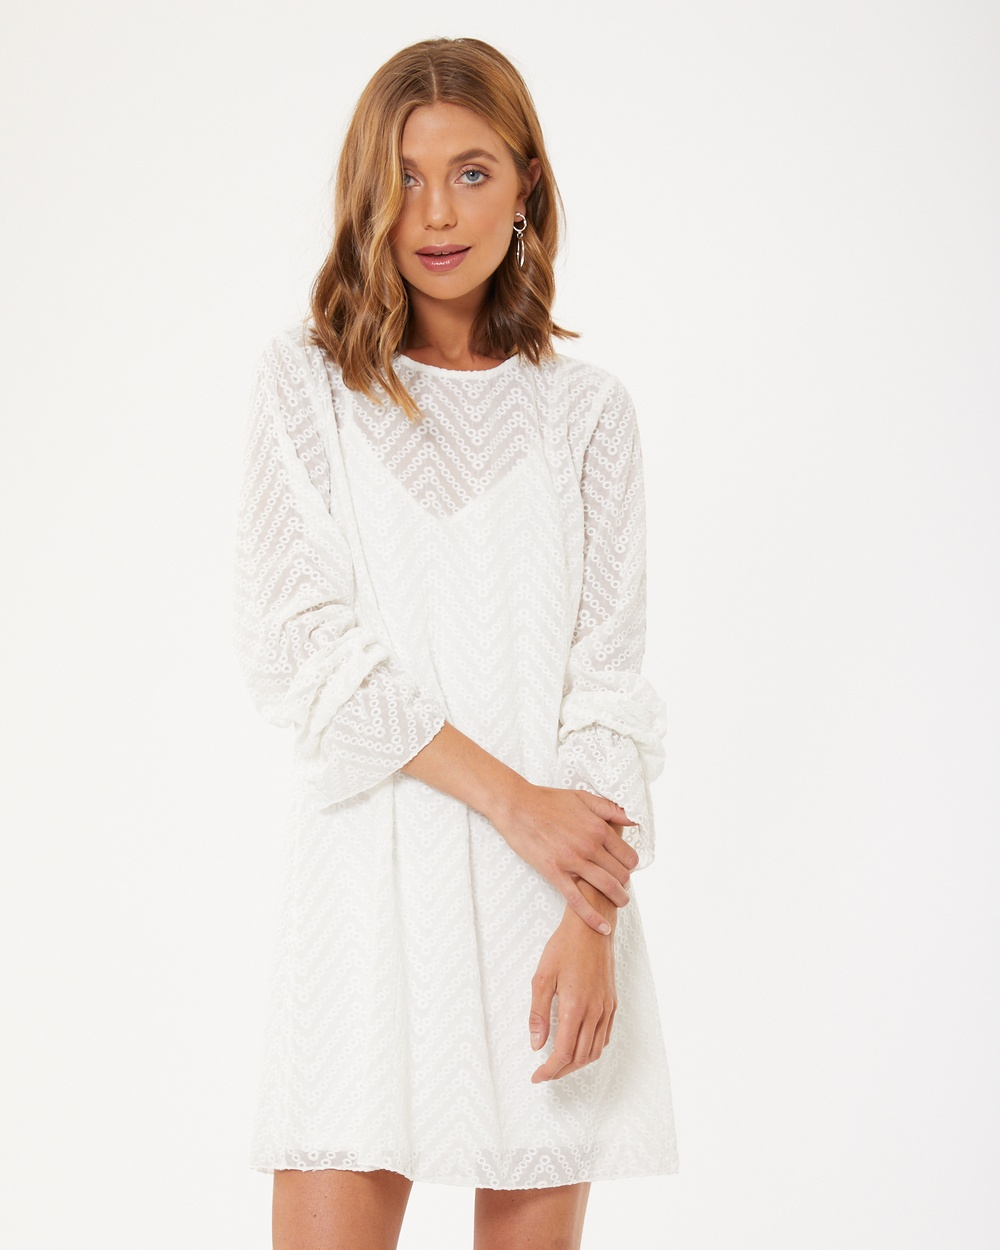 Calli Averie Embroidery Dress Dresses White Averie Embroidery Dress